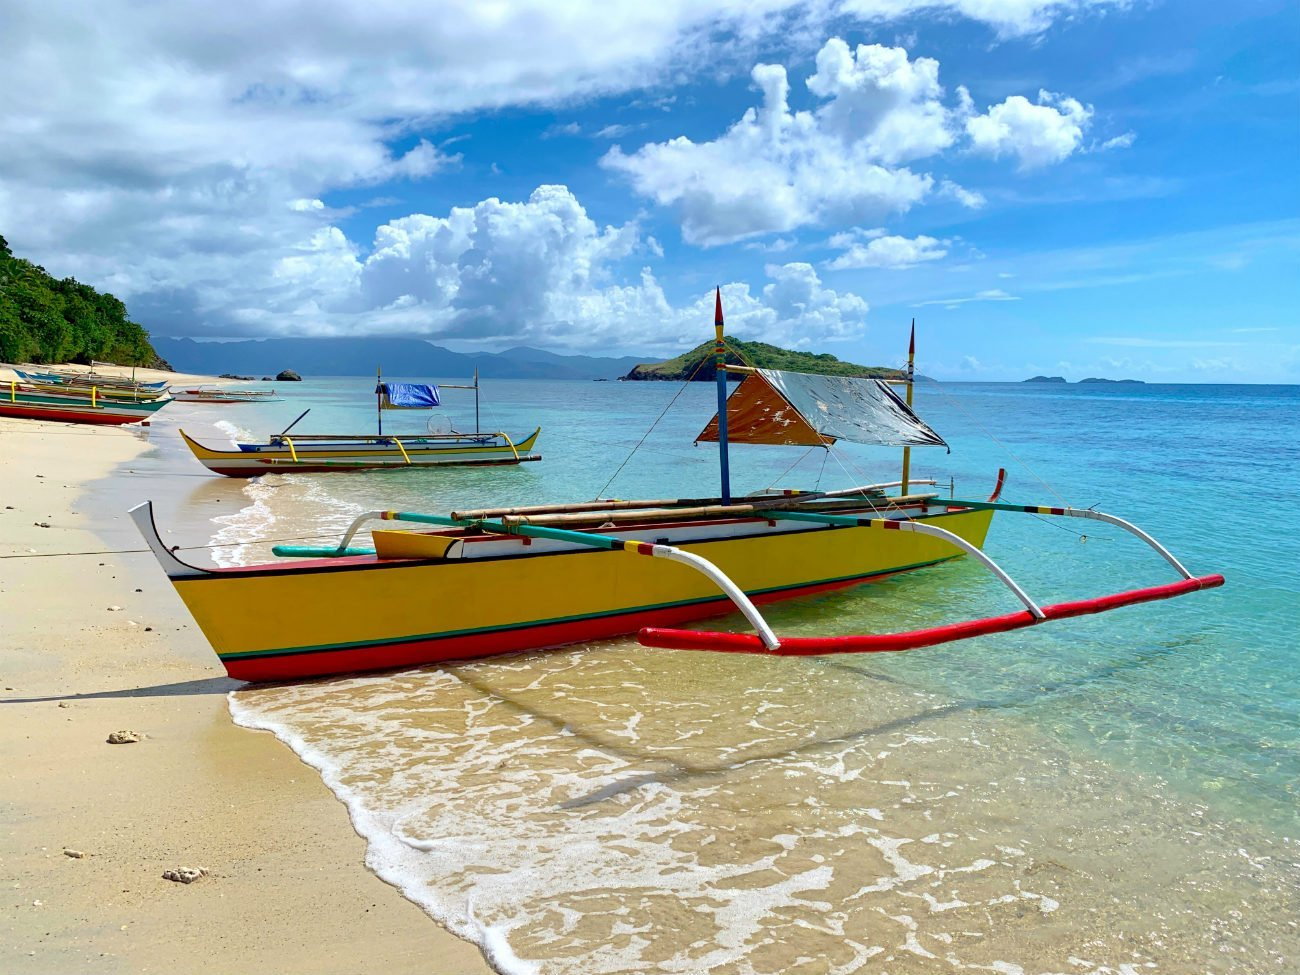 sustainable tourism in the philippines - Caramoan Islands boats